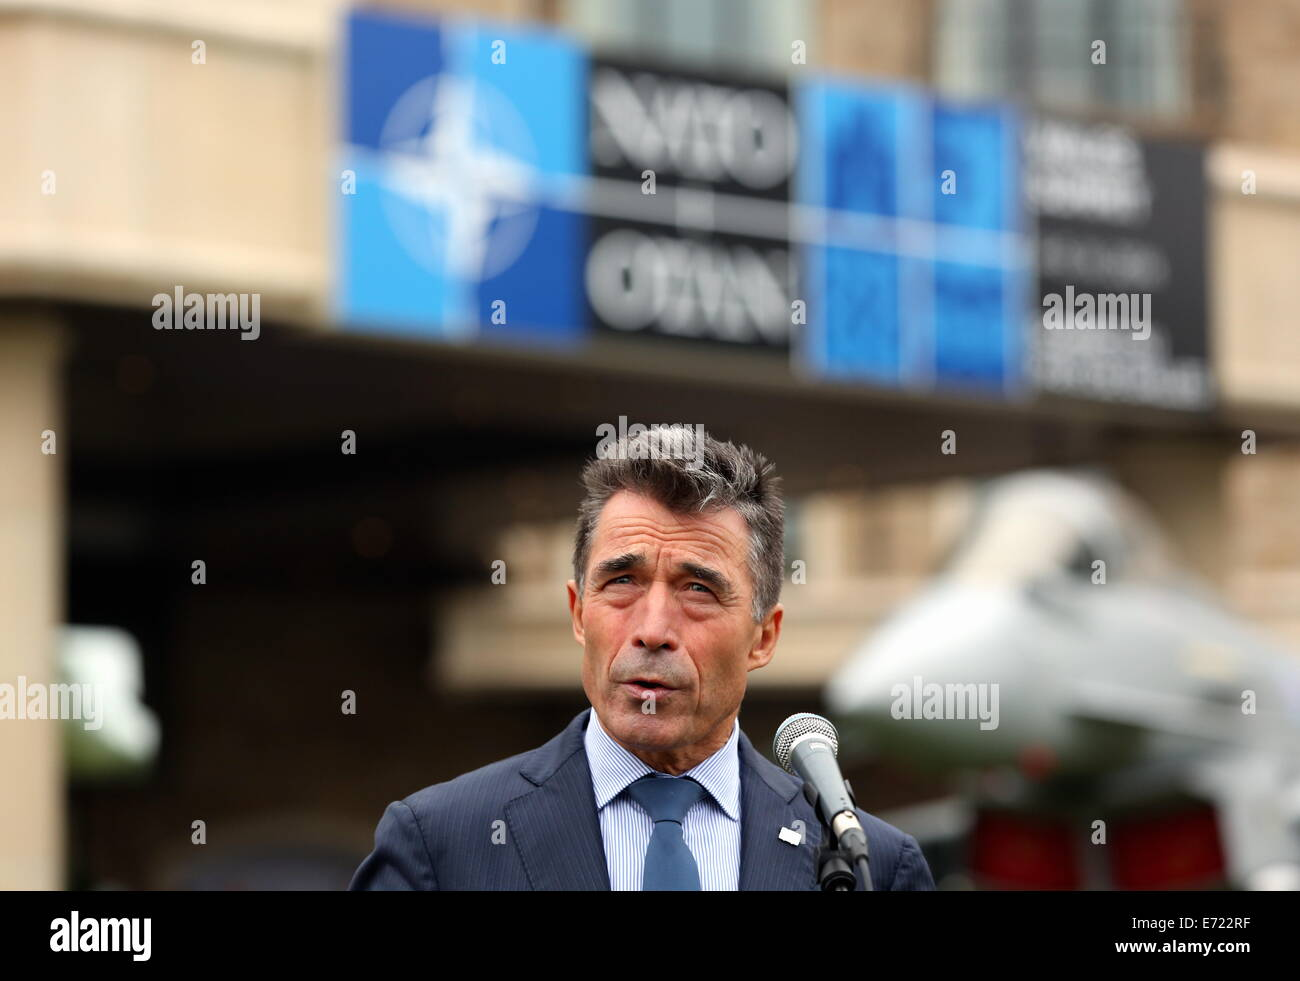 Pictured NATO Secretary-General Anders Fogh Rasmussen addressing members of the press at the Doorstep event. Re NATO Summit at the Celtic Manor Hotel ...  sc 1 st  Alamy & Newport UK. 4th Sep 2014. Pictured: NATO Secretary-General Anders ...